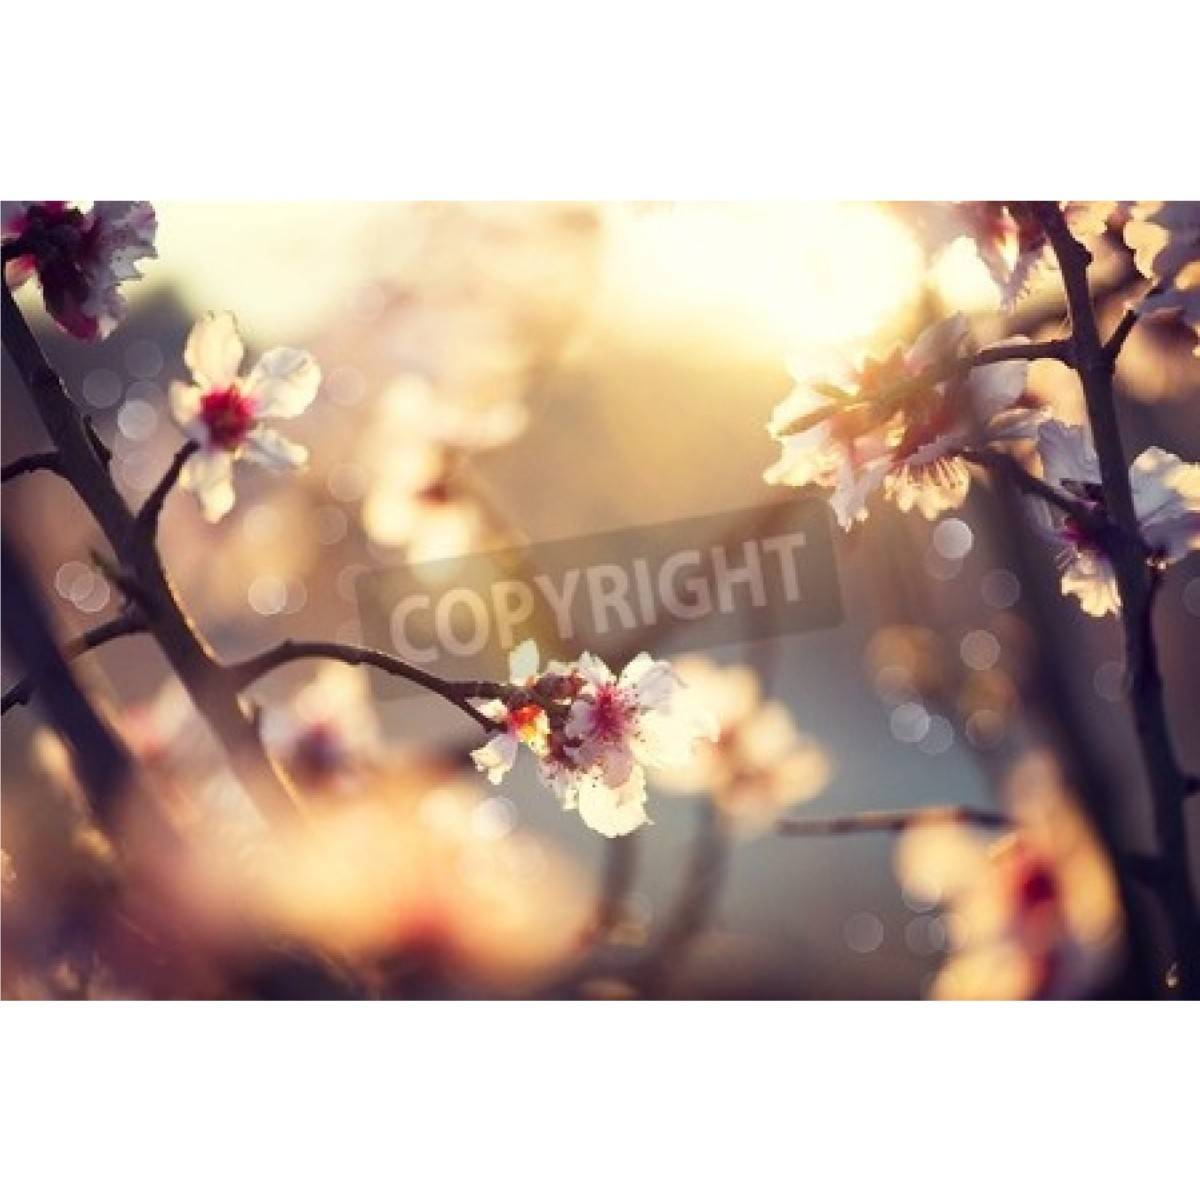 Beautiful nature scene with blooming tree